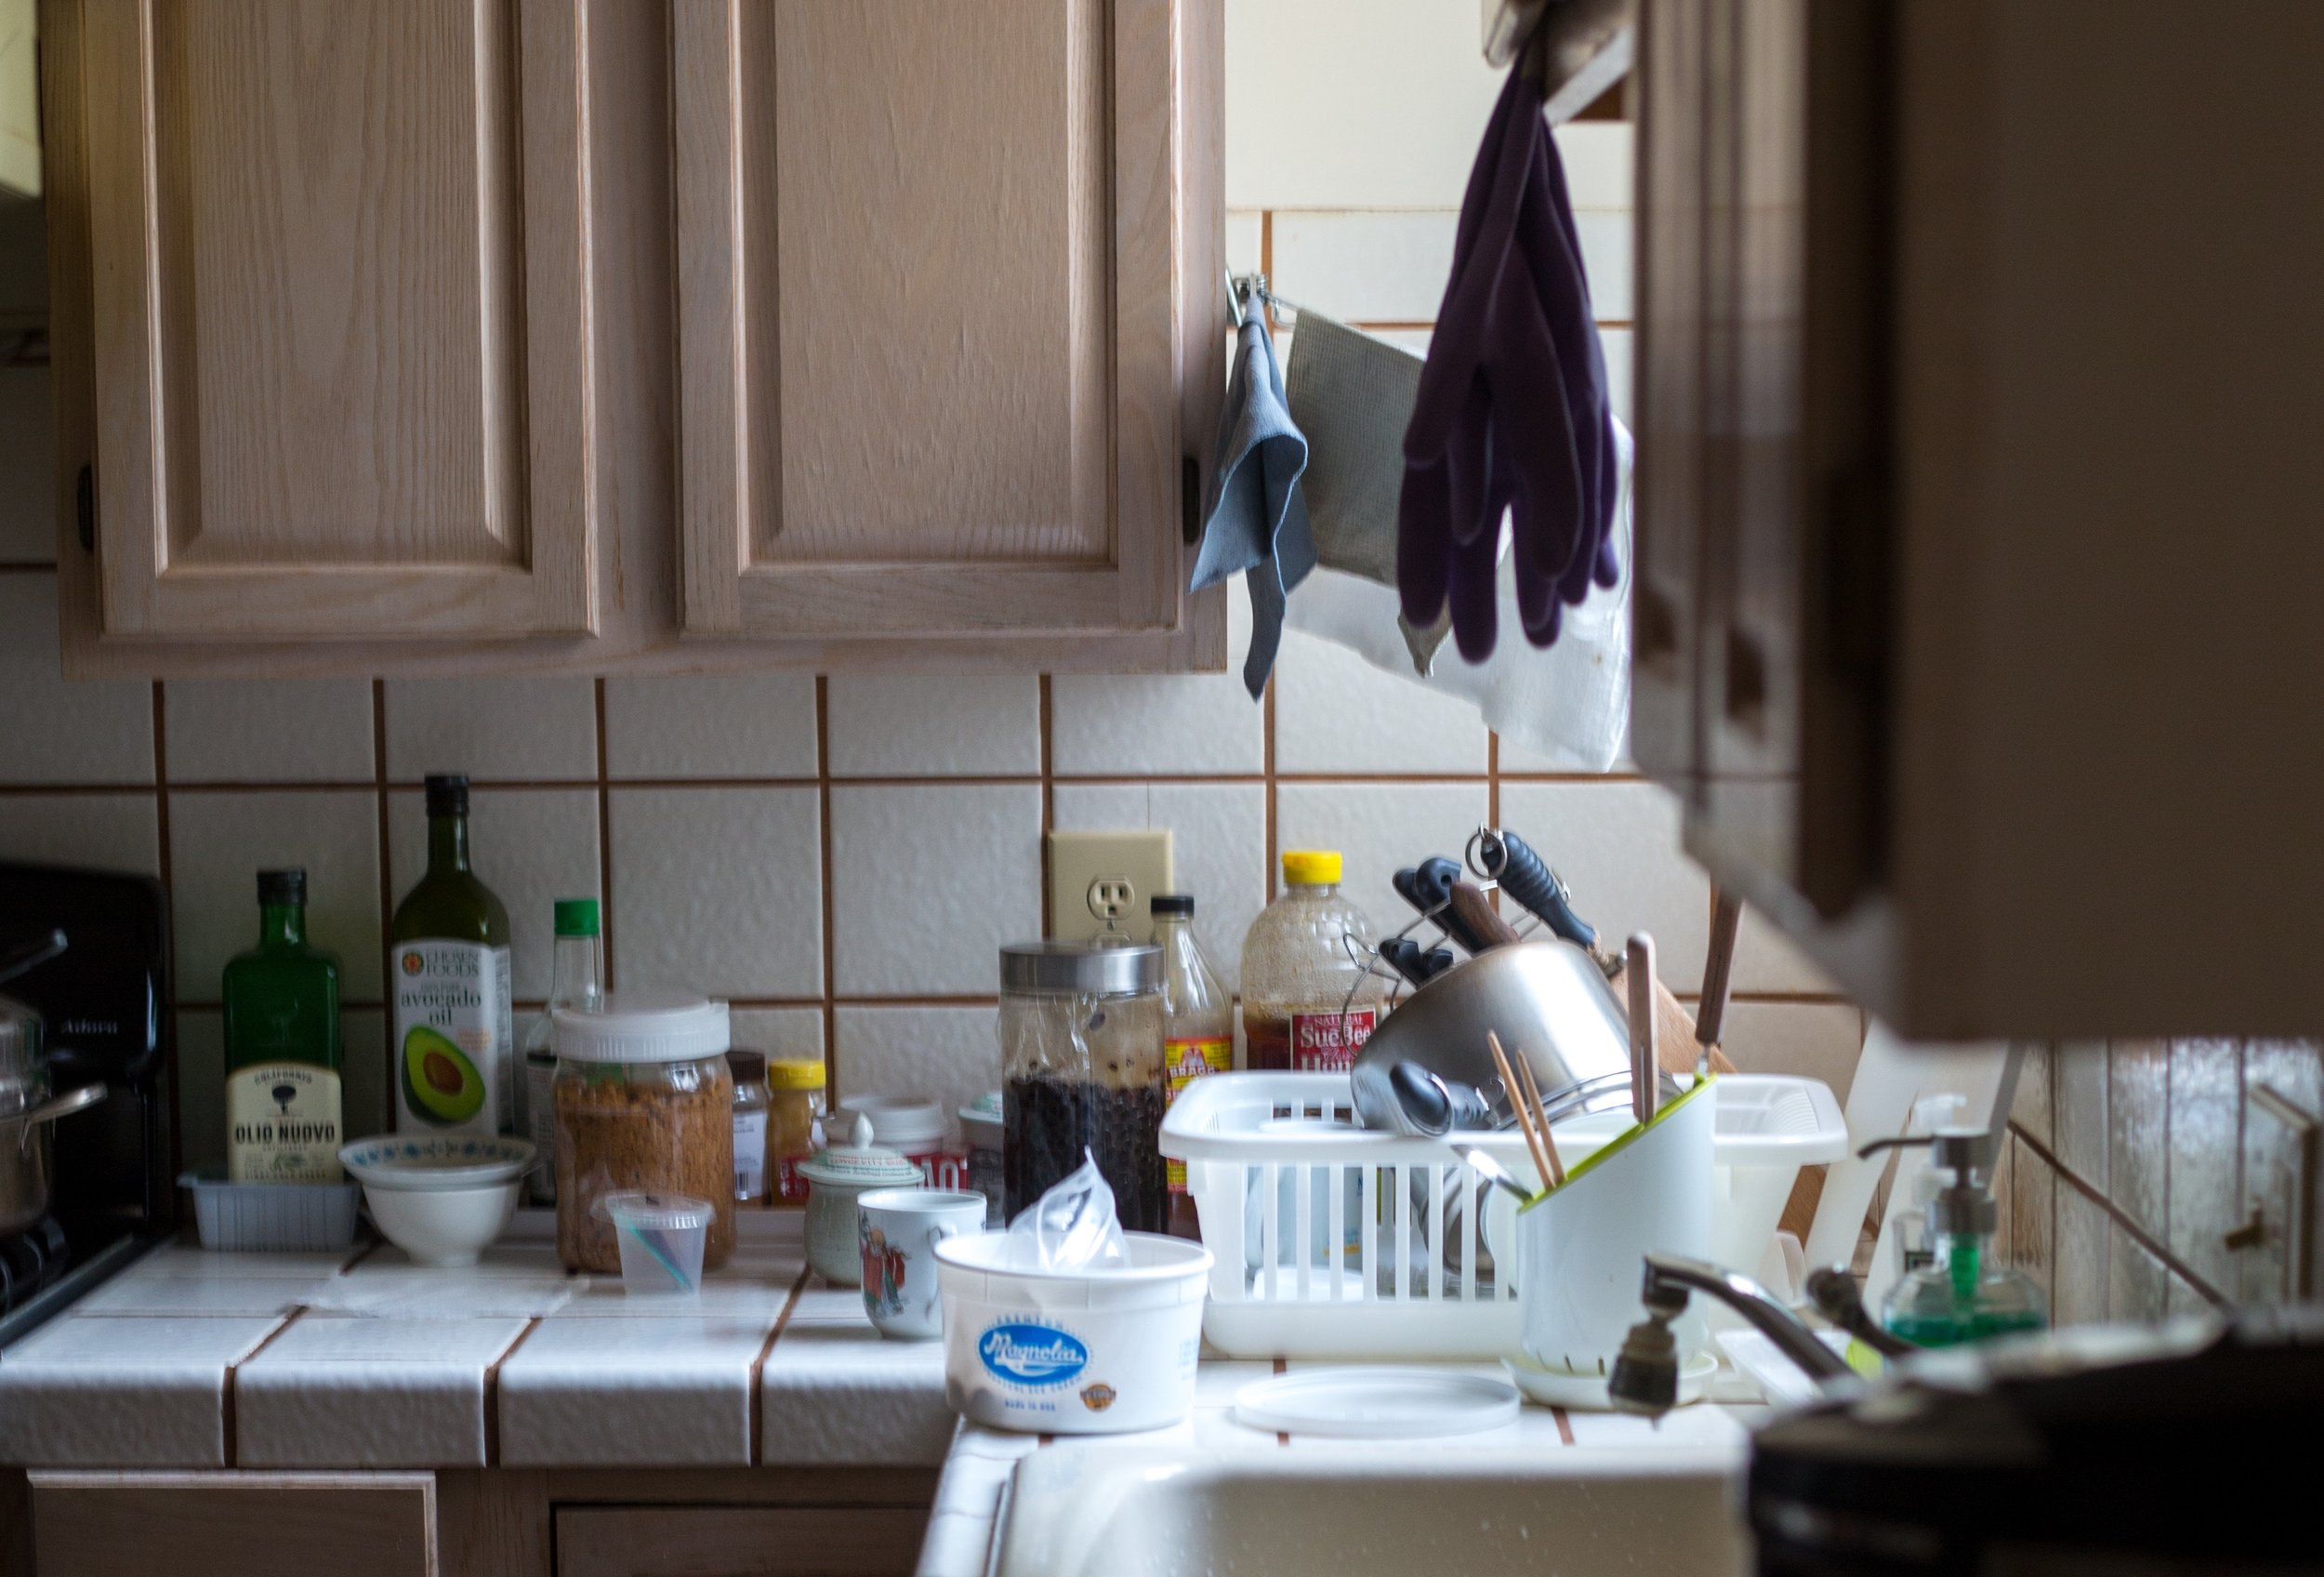 a messy kitchen that will need cleaning before selling